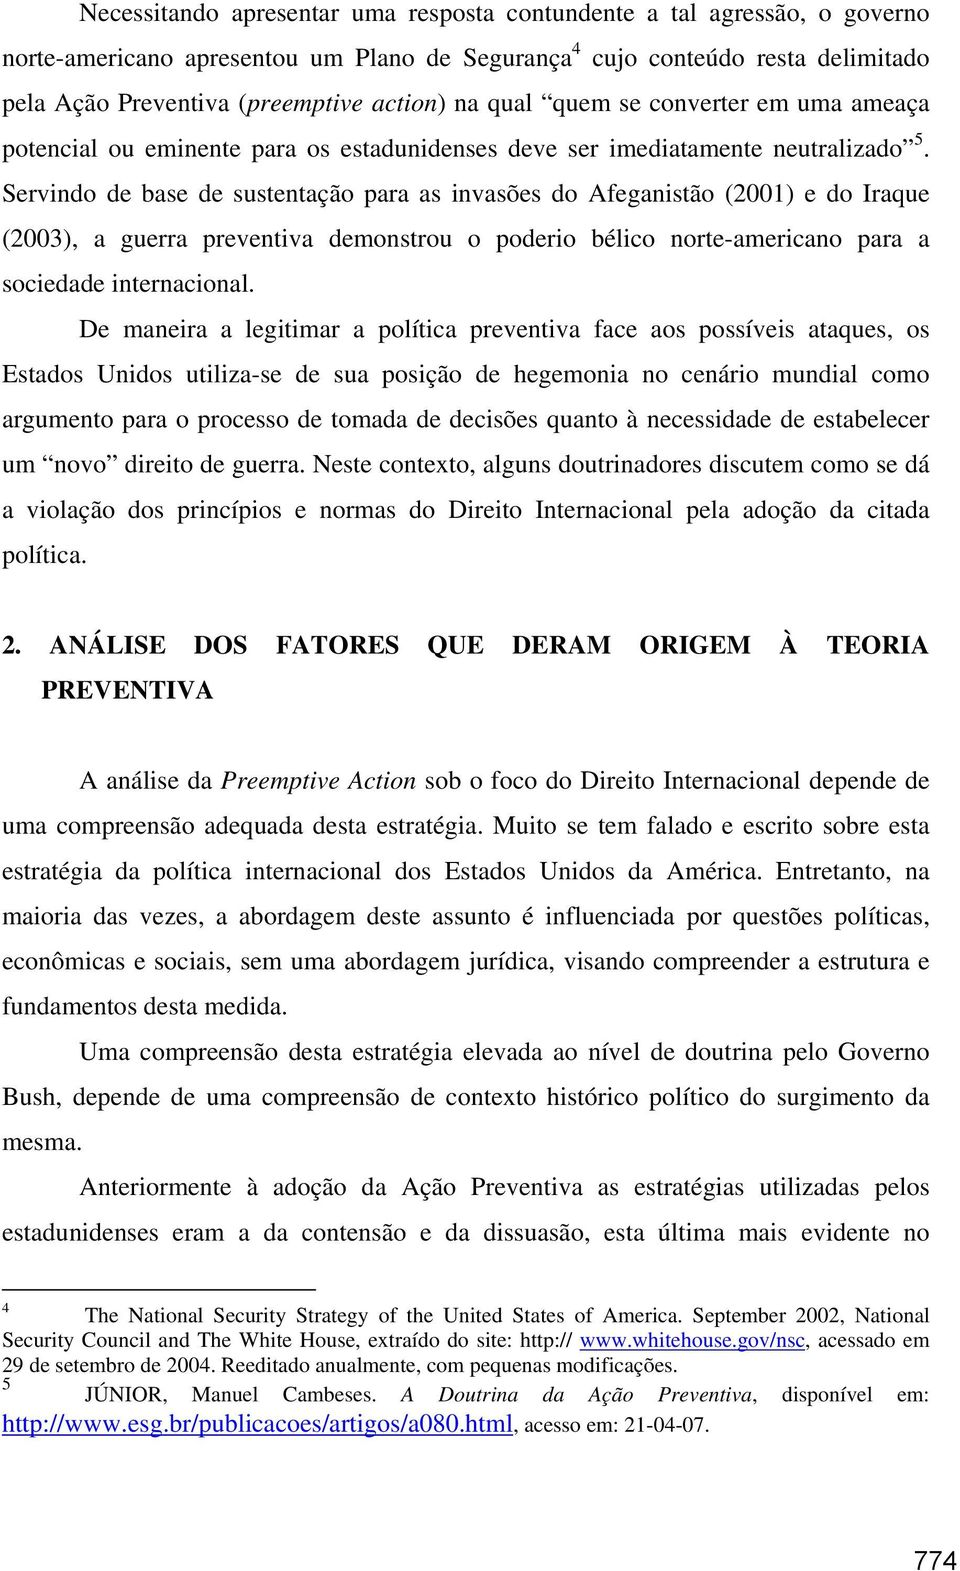 Servindo de base de sustentação para as invasões do Afeganistão (2001) e do Iraque (2003), a guerra preventiva demonstrou o poderio bélico norte-americano para a sociedade internacional.